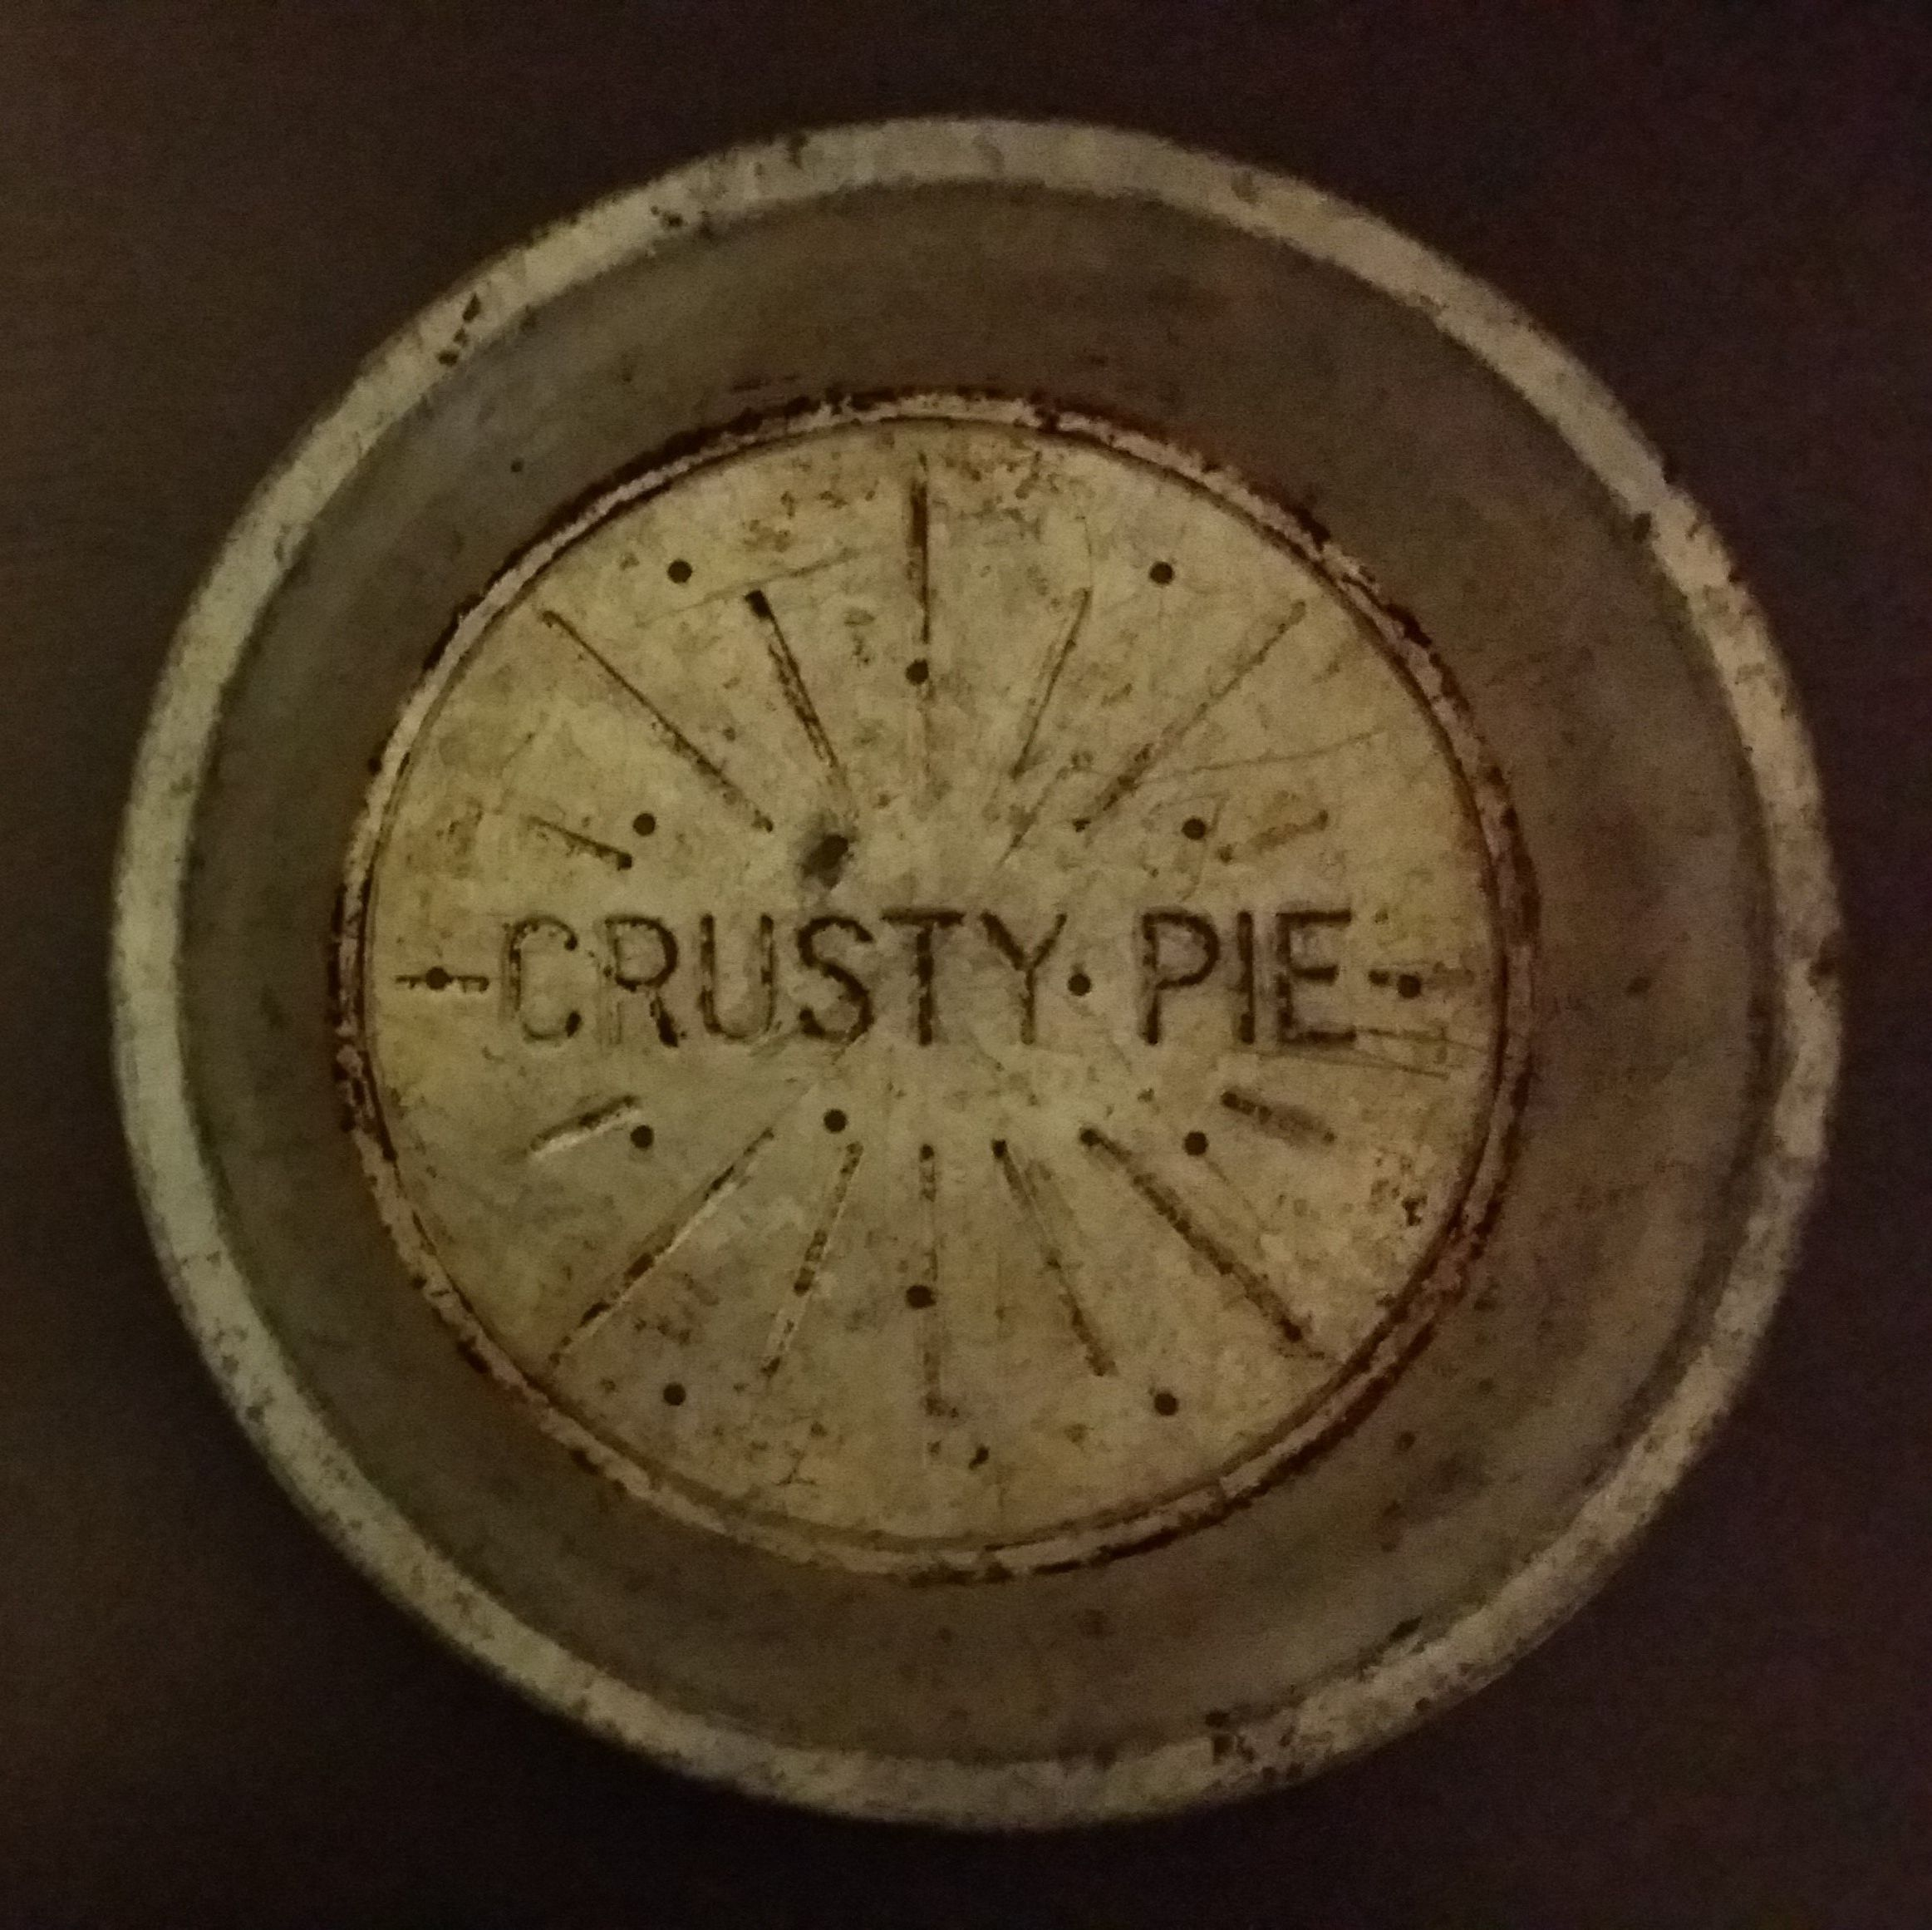 Crusty Pie